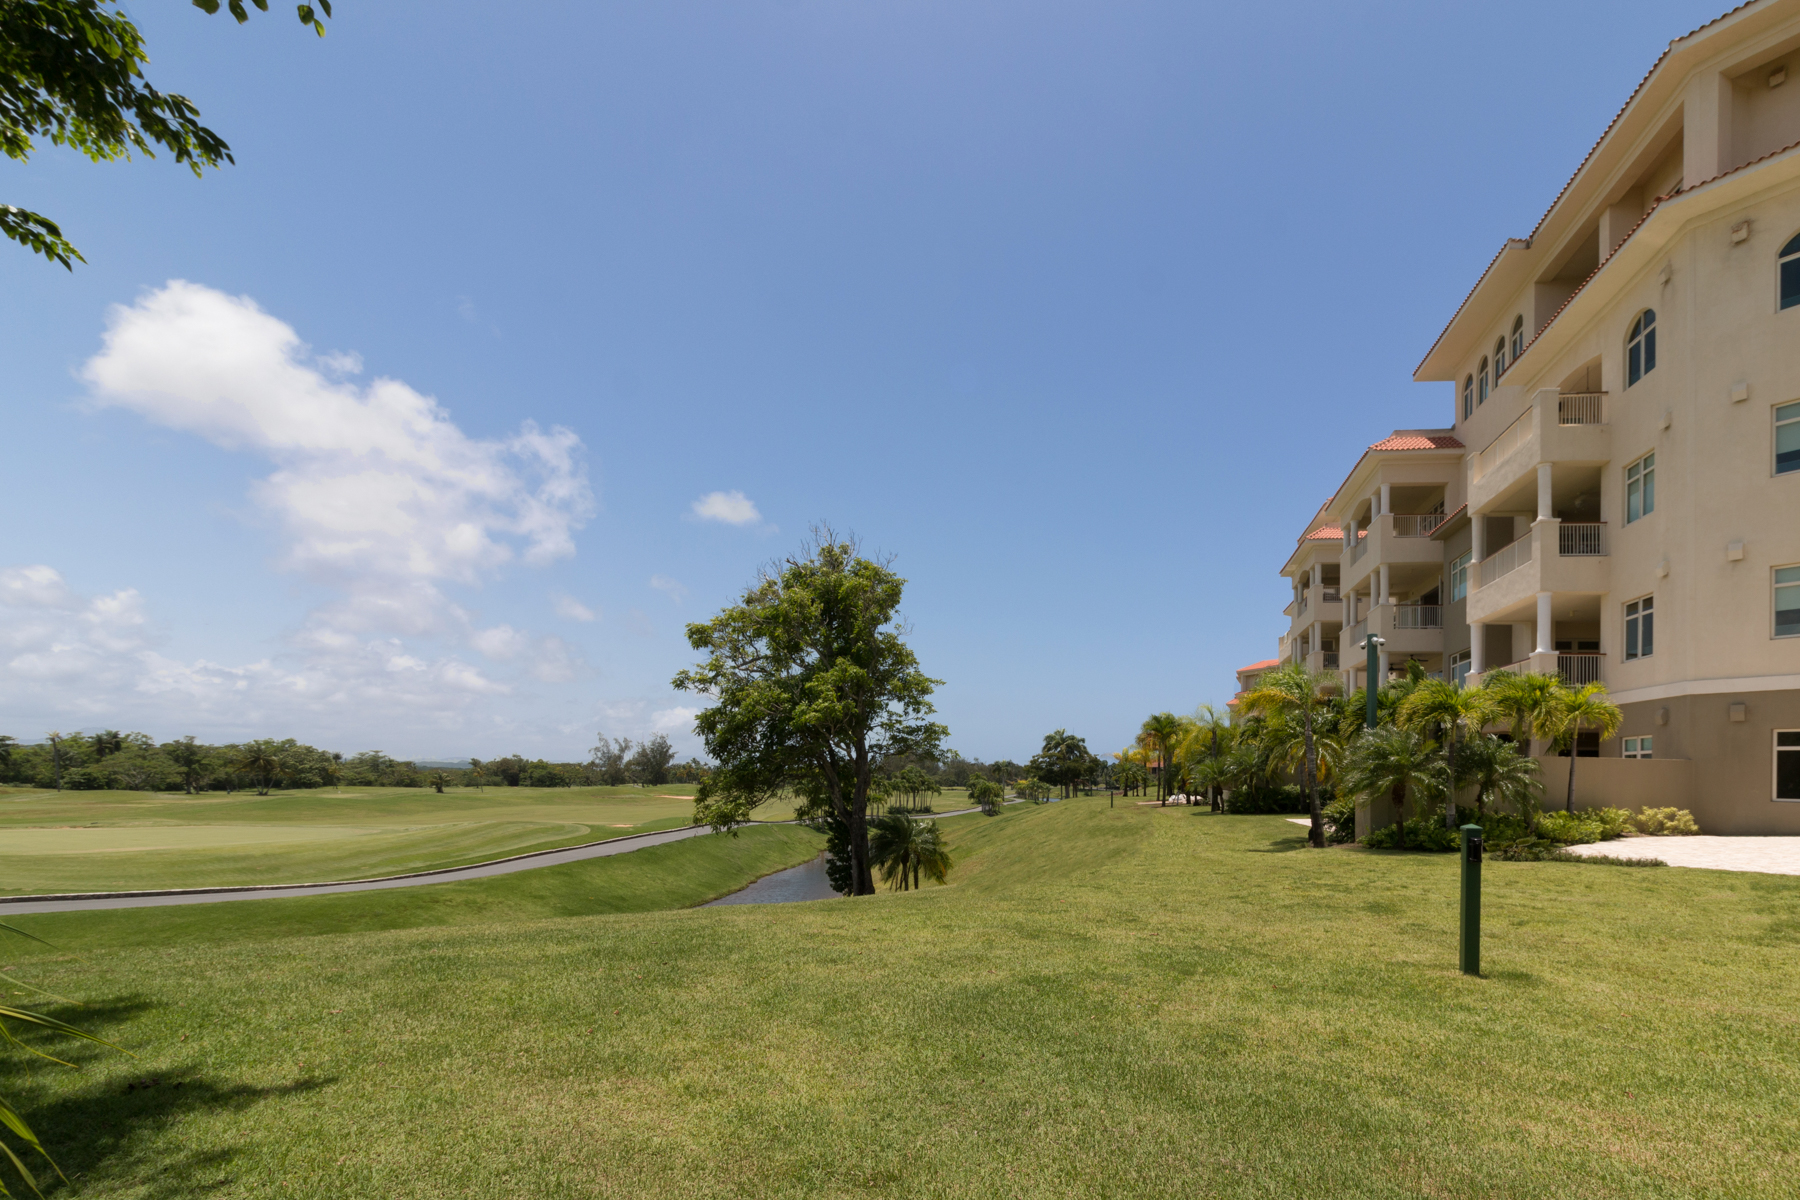 Additional photo for property listing at Plantation Village Spacious Ground Floor Residence 500 Plantation Drive Building 3, Apt 100 Dorado Beach, Puerto Rico 00646 Пуэрто-Рико